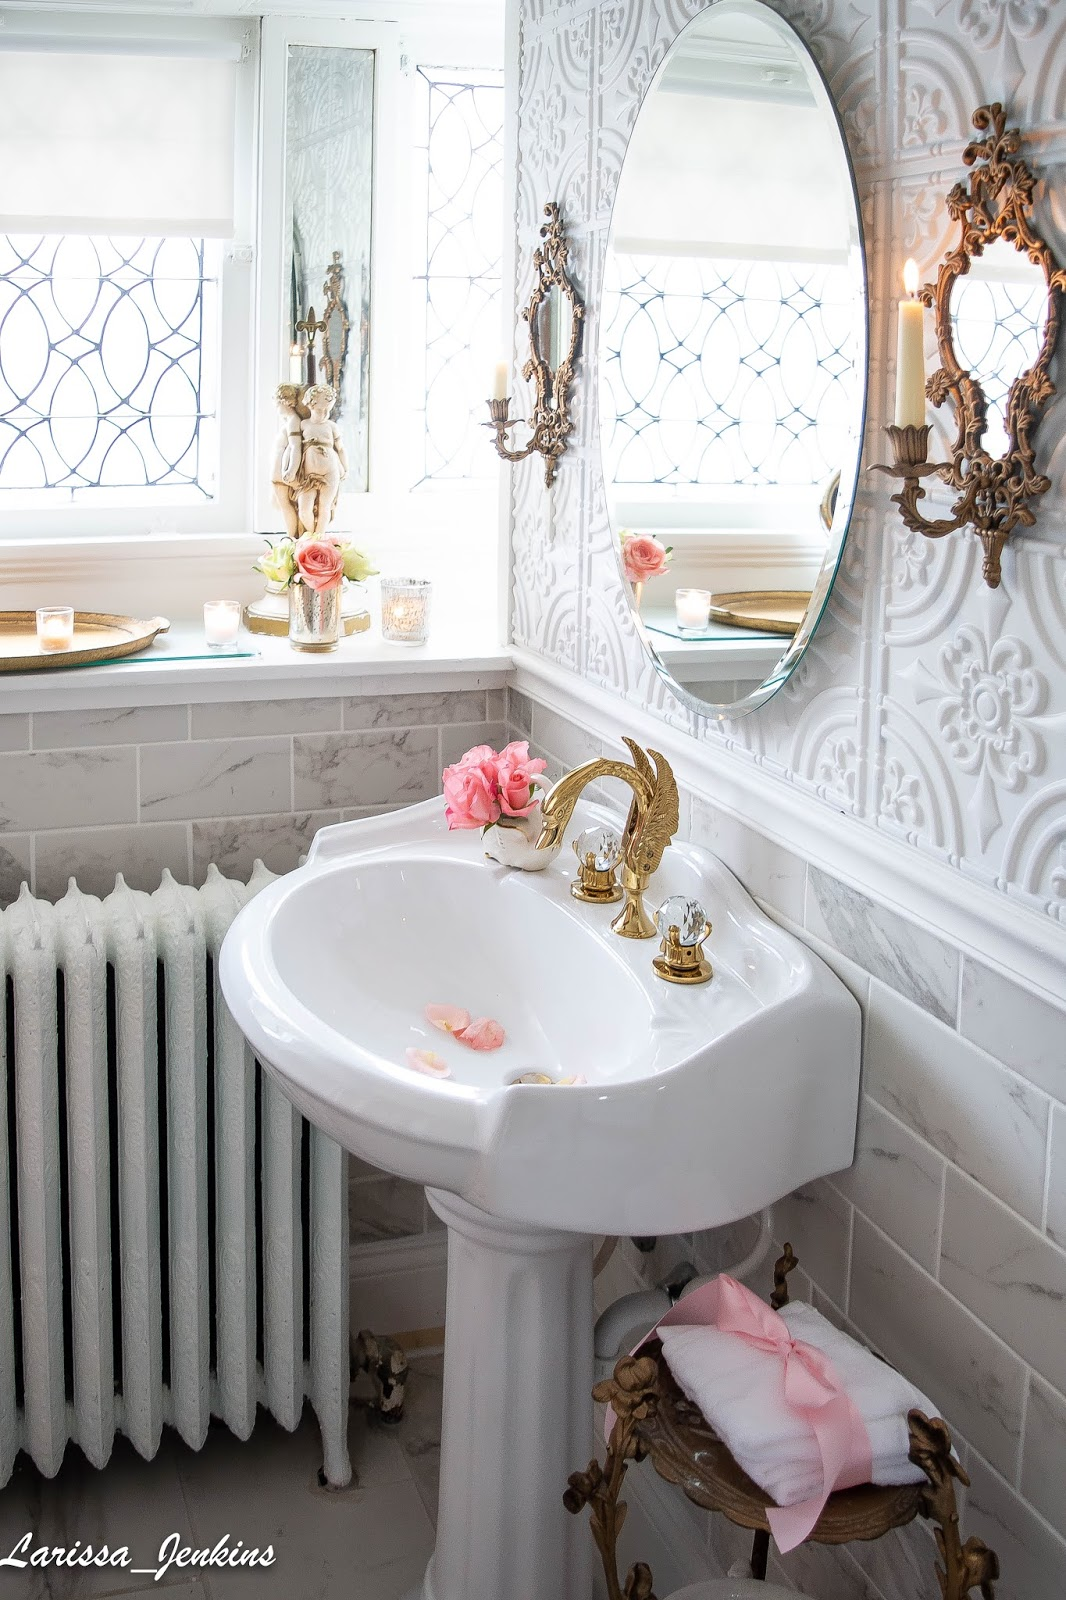 Follow The Yellow Brick Home Beautiful Vintage Bathroom Ideas Using Vintage Repurposed Furniture And Accessories To Create Vintage Bathroom Style